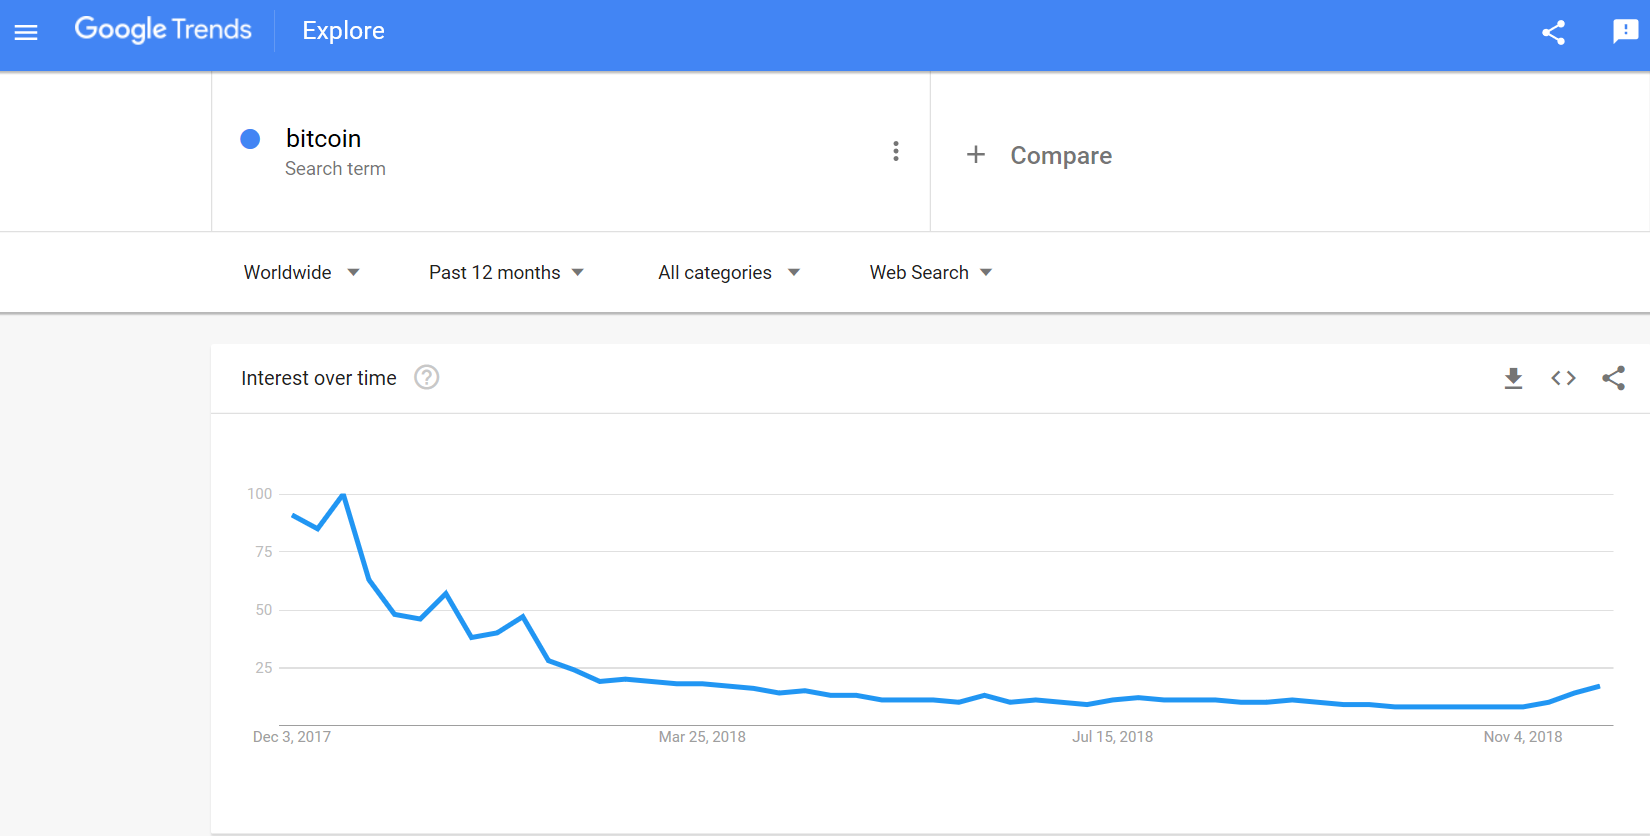 Google searches for bitcoin